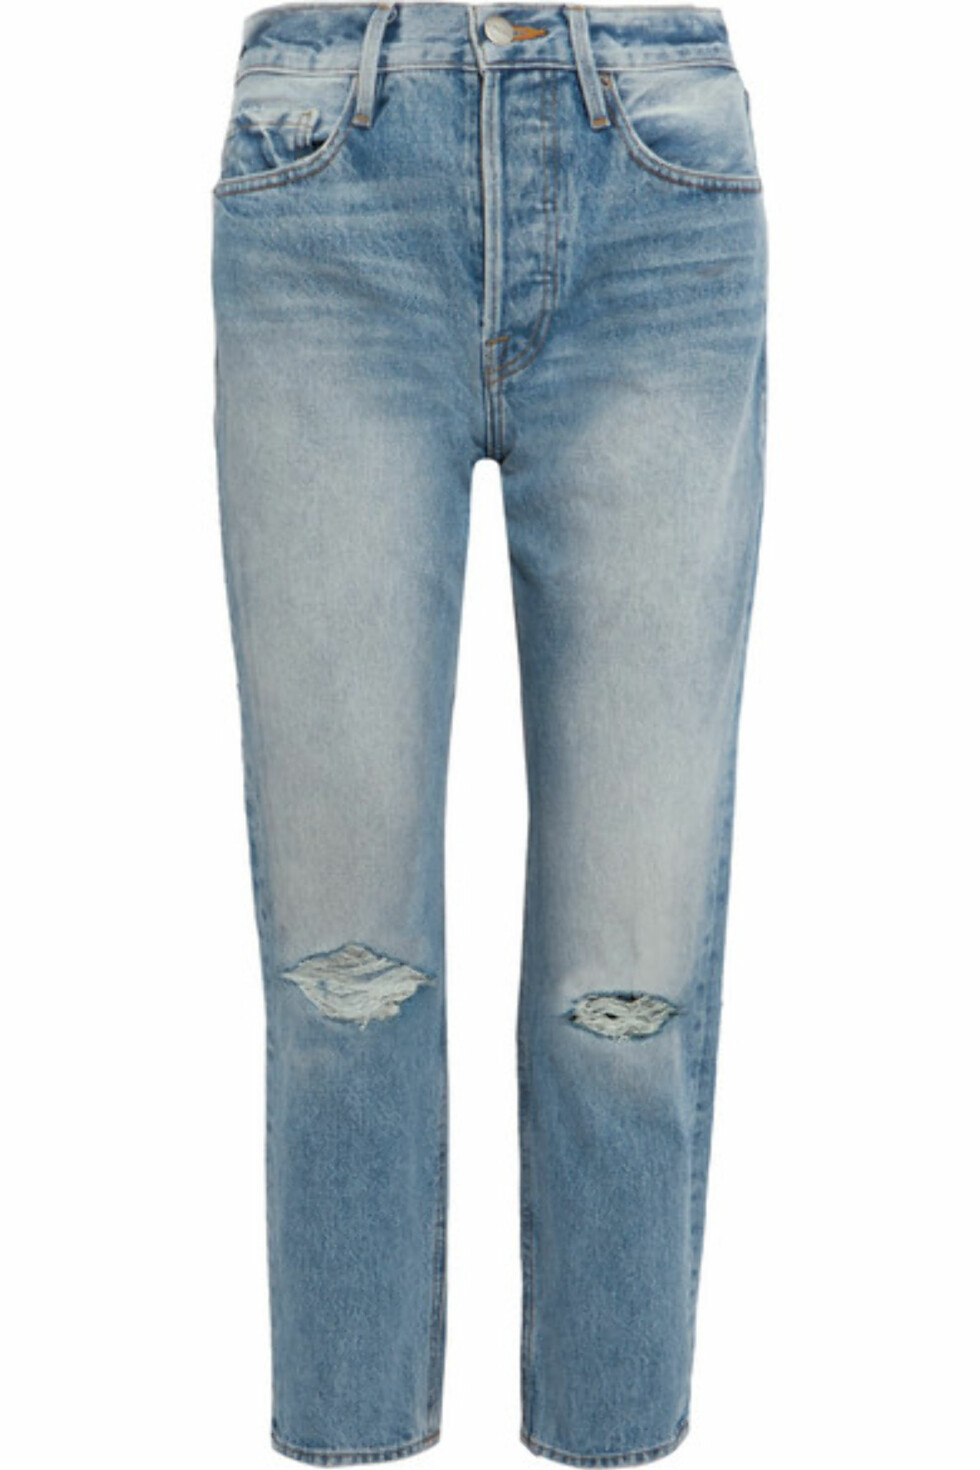 Jeans fra Frame |2830,-| https://www.net-a-porter.com/no/en/product/892097/frame/rigid-re-release-le-original-distressed-high-rise-straight-leg-jeans